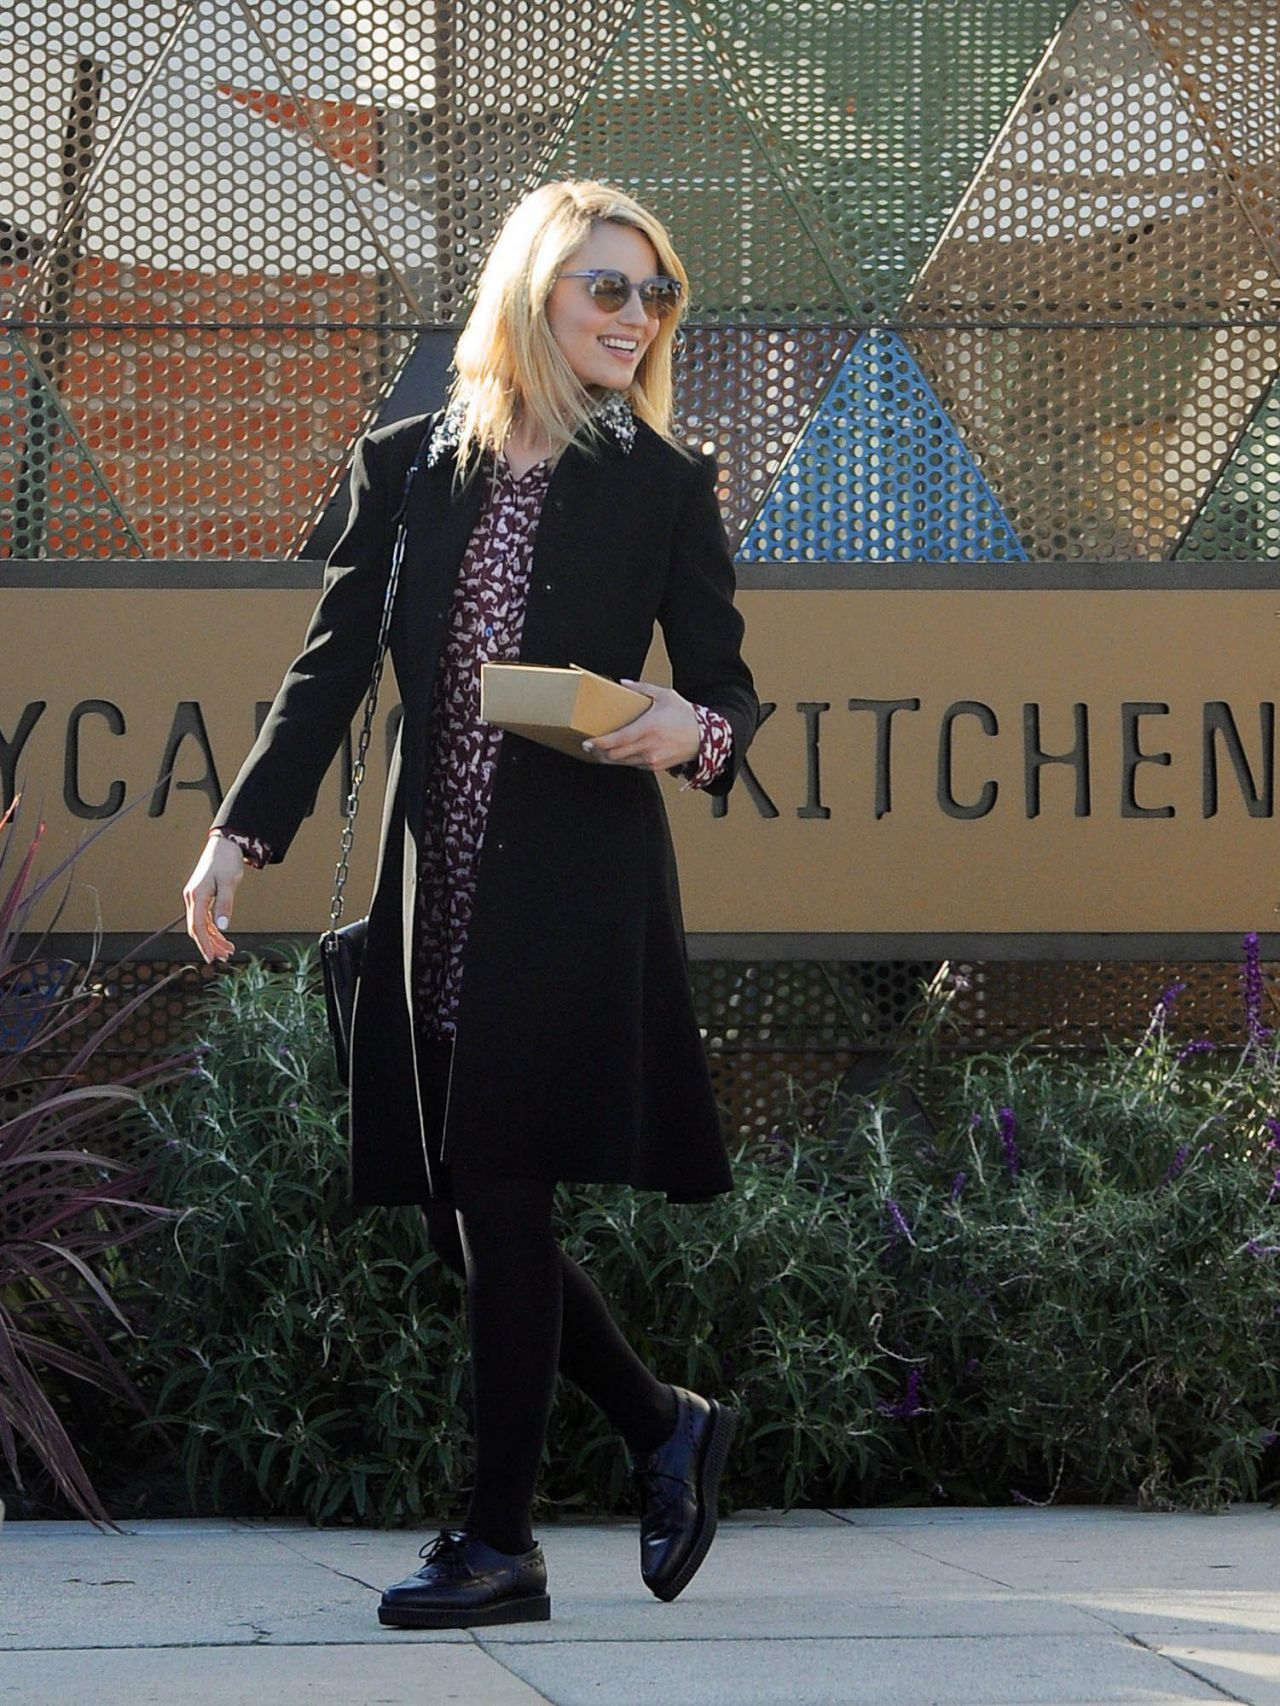 Dianna Agron Street Style - Leaving a restaurant in Los Angeles - February 2014